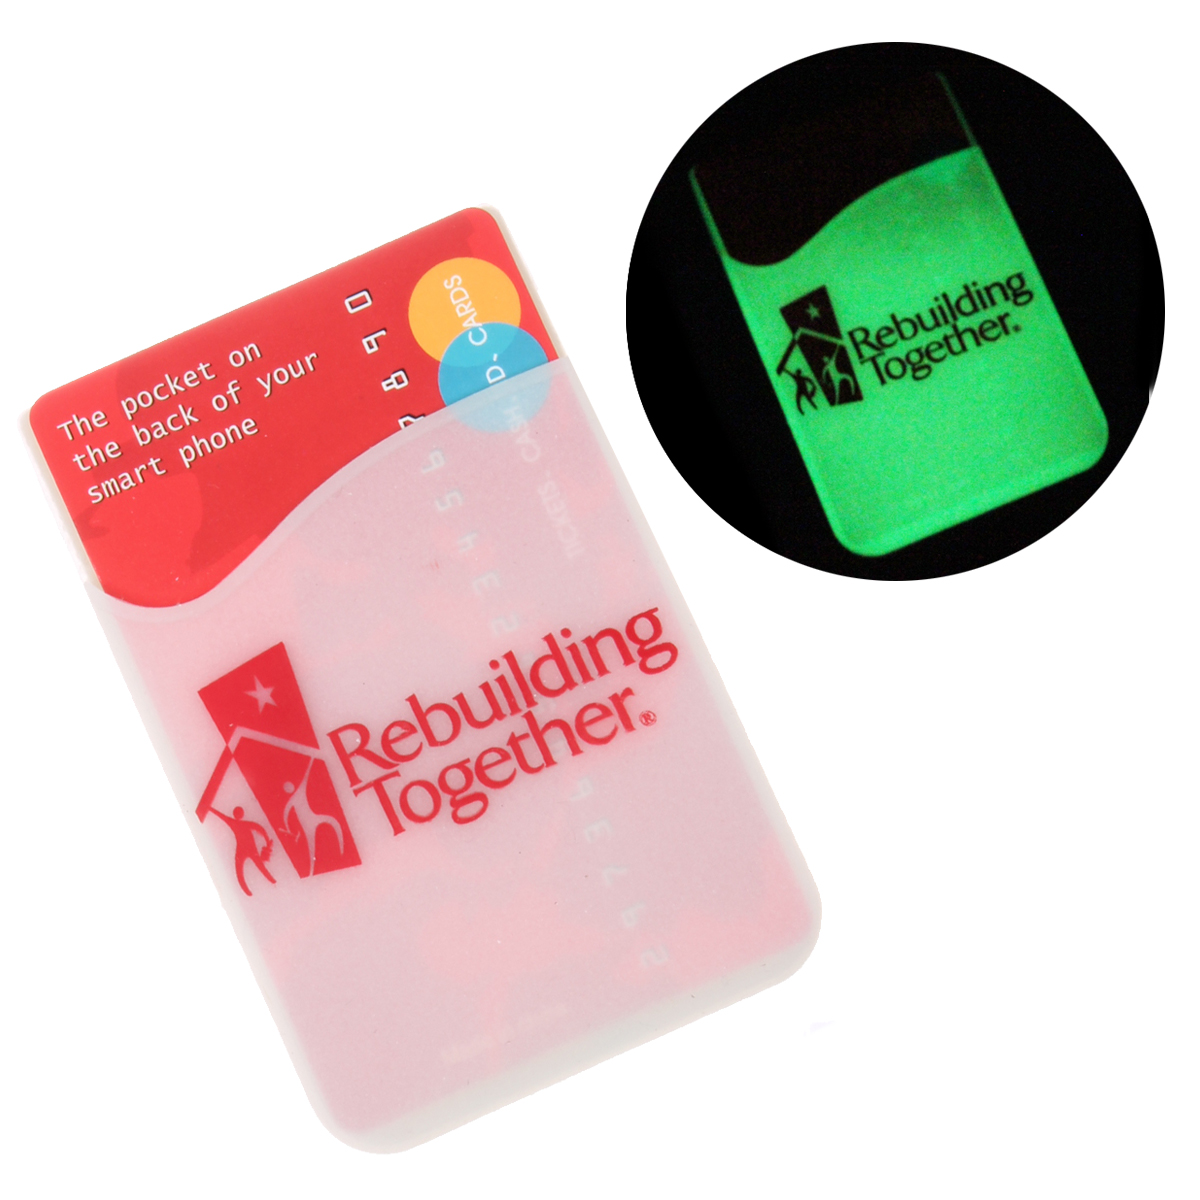 Glowing Cell Phone Wallet